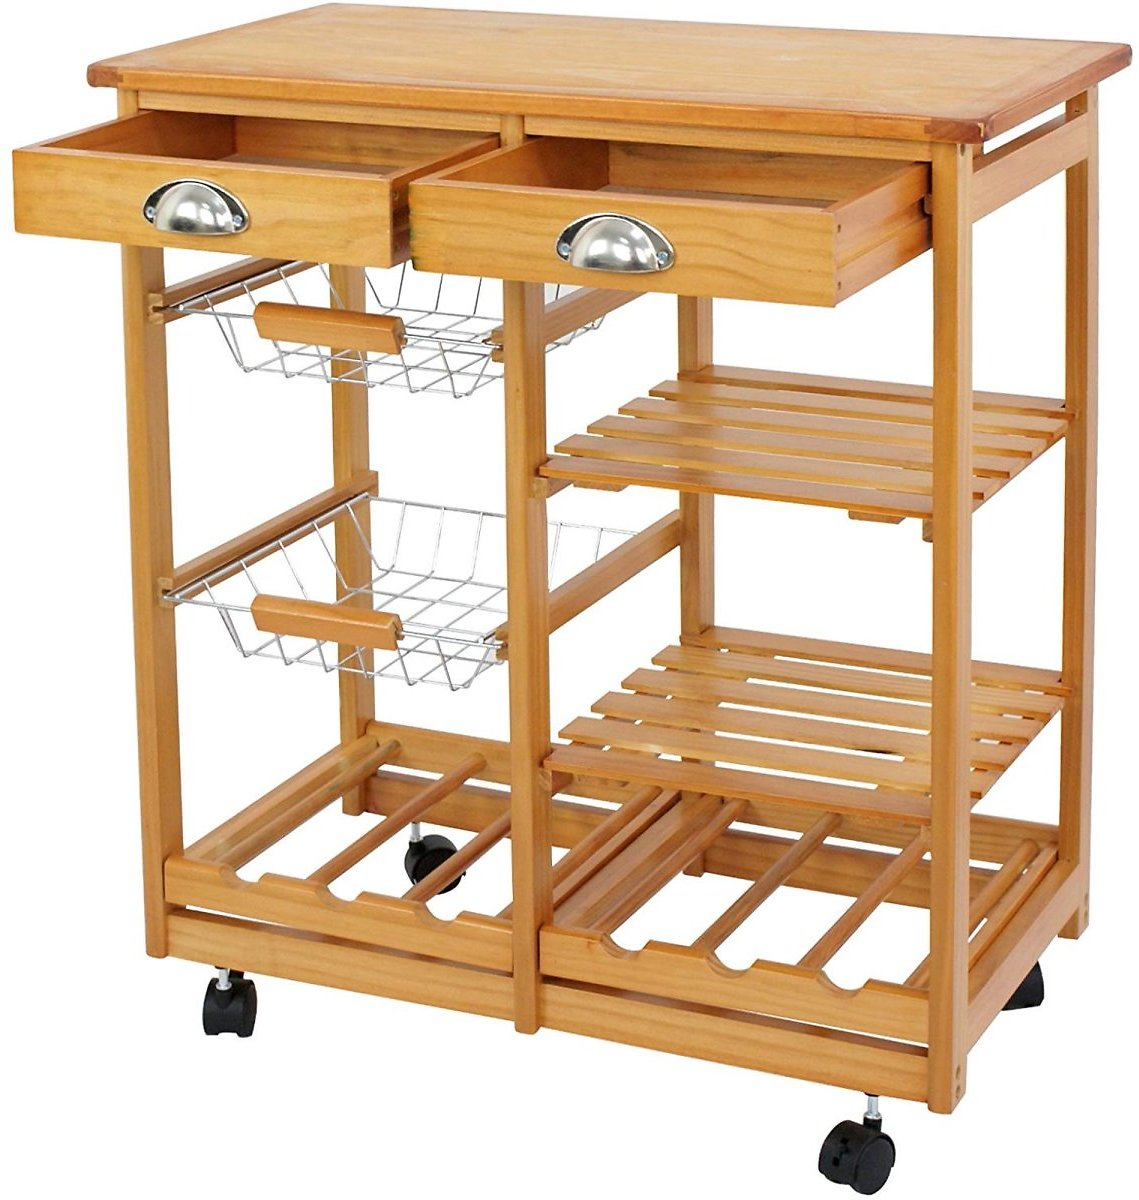 Kitchen-Cart-Island-Home-Rolling-Wooden-Dining-Storage-Trolley-Utility-Cart-W-Drawers-and-Steel-Baske